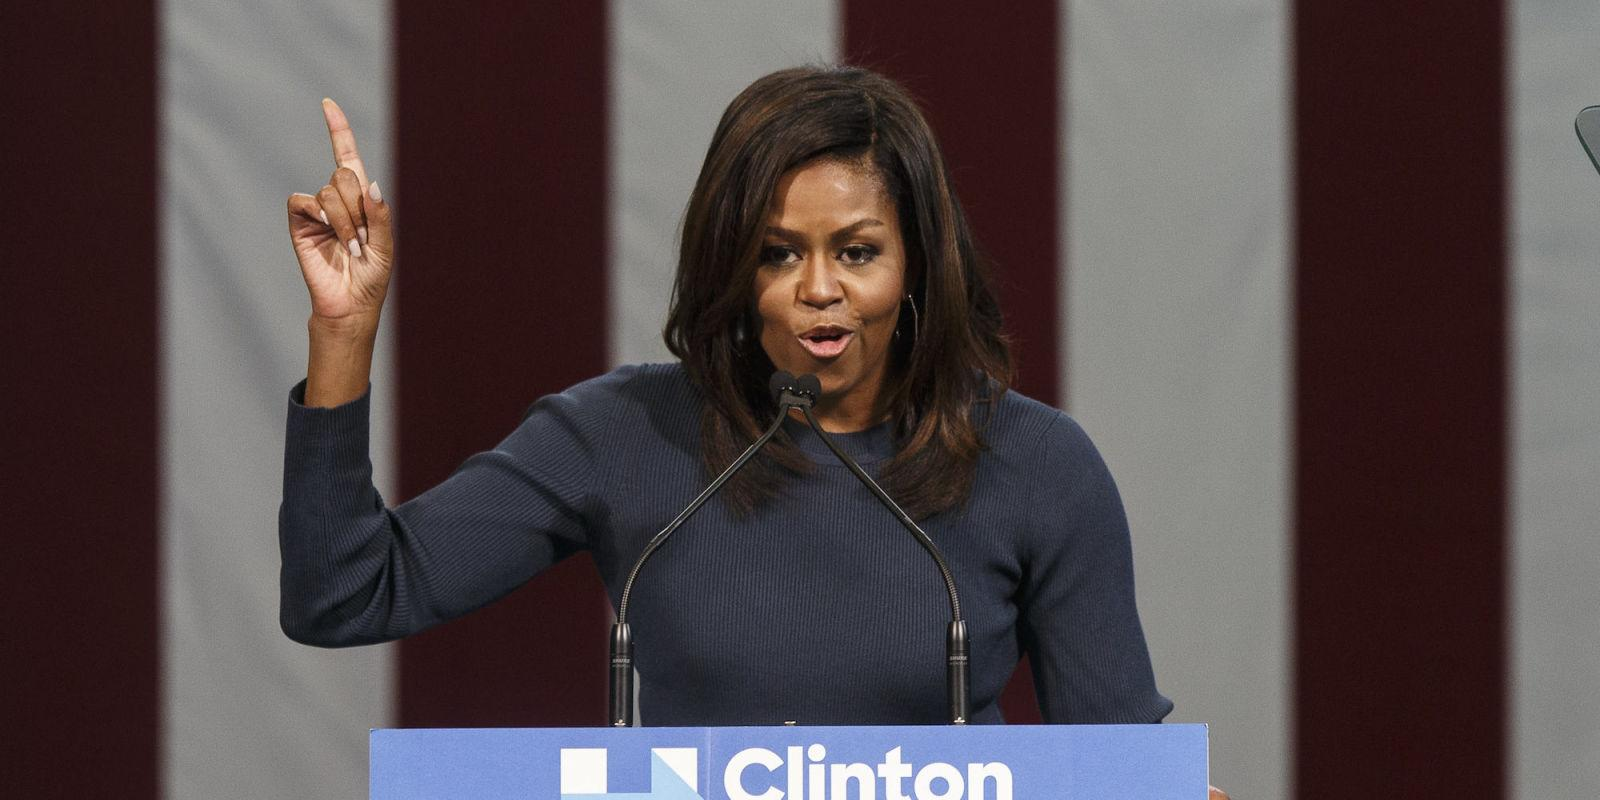 And Here's Michelle Obama Rightfully Putting Donald Trump on Blast Once Again